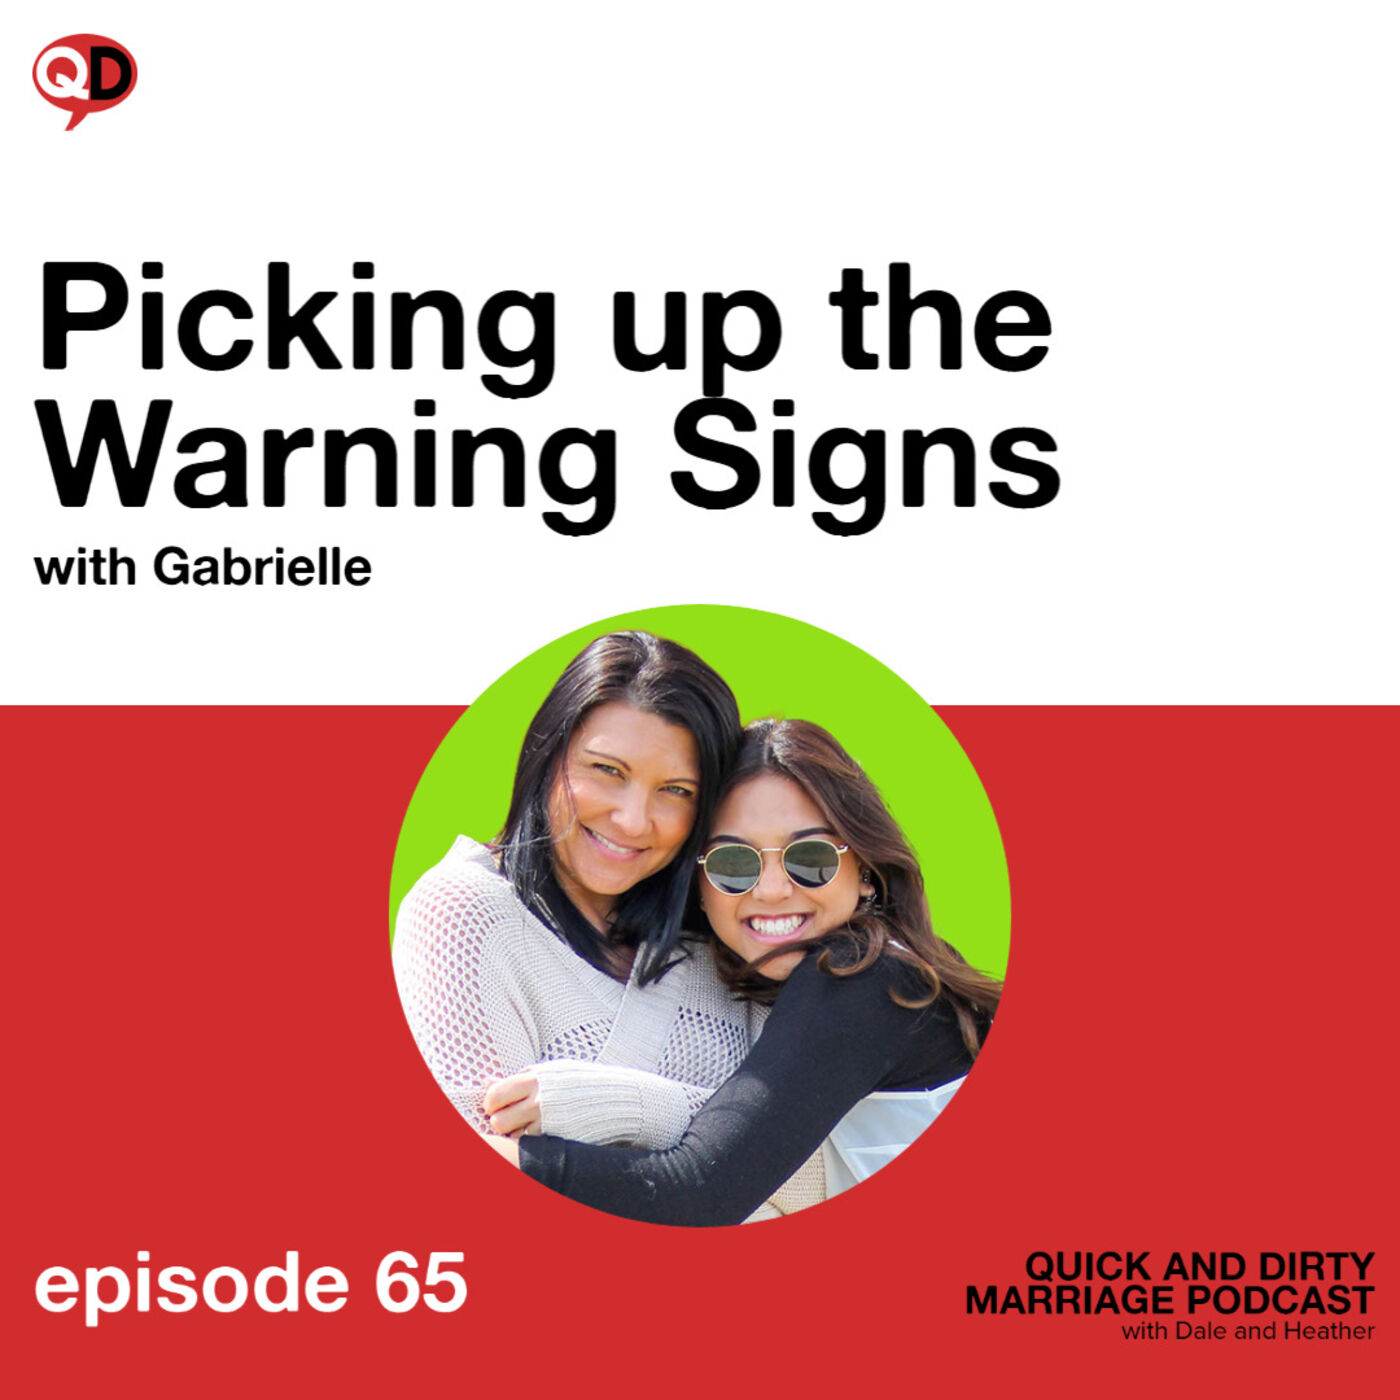 Picking up the Warning Signs